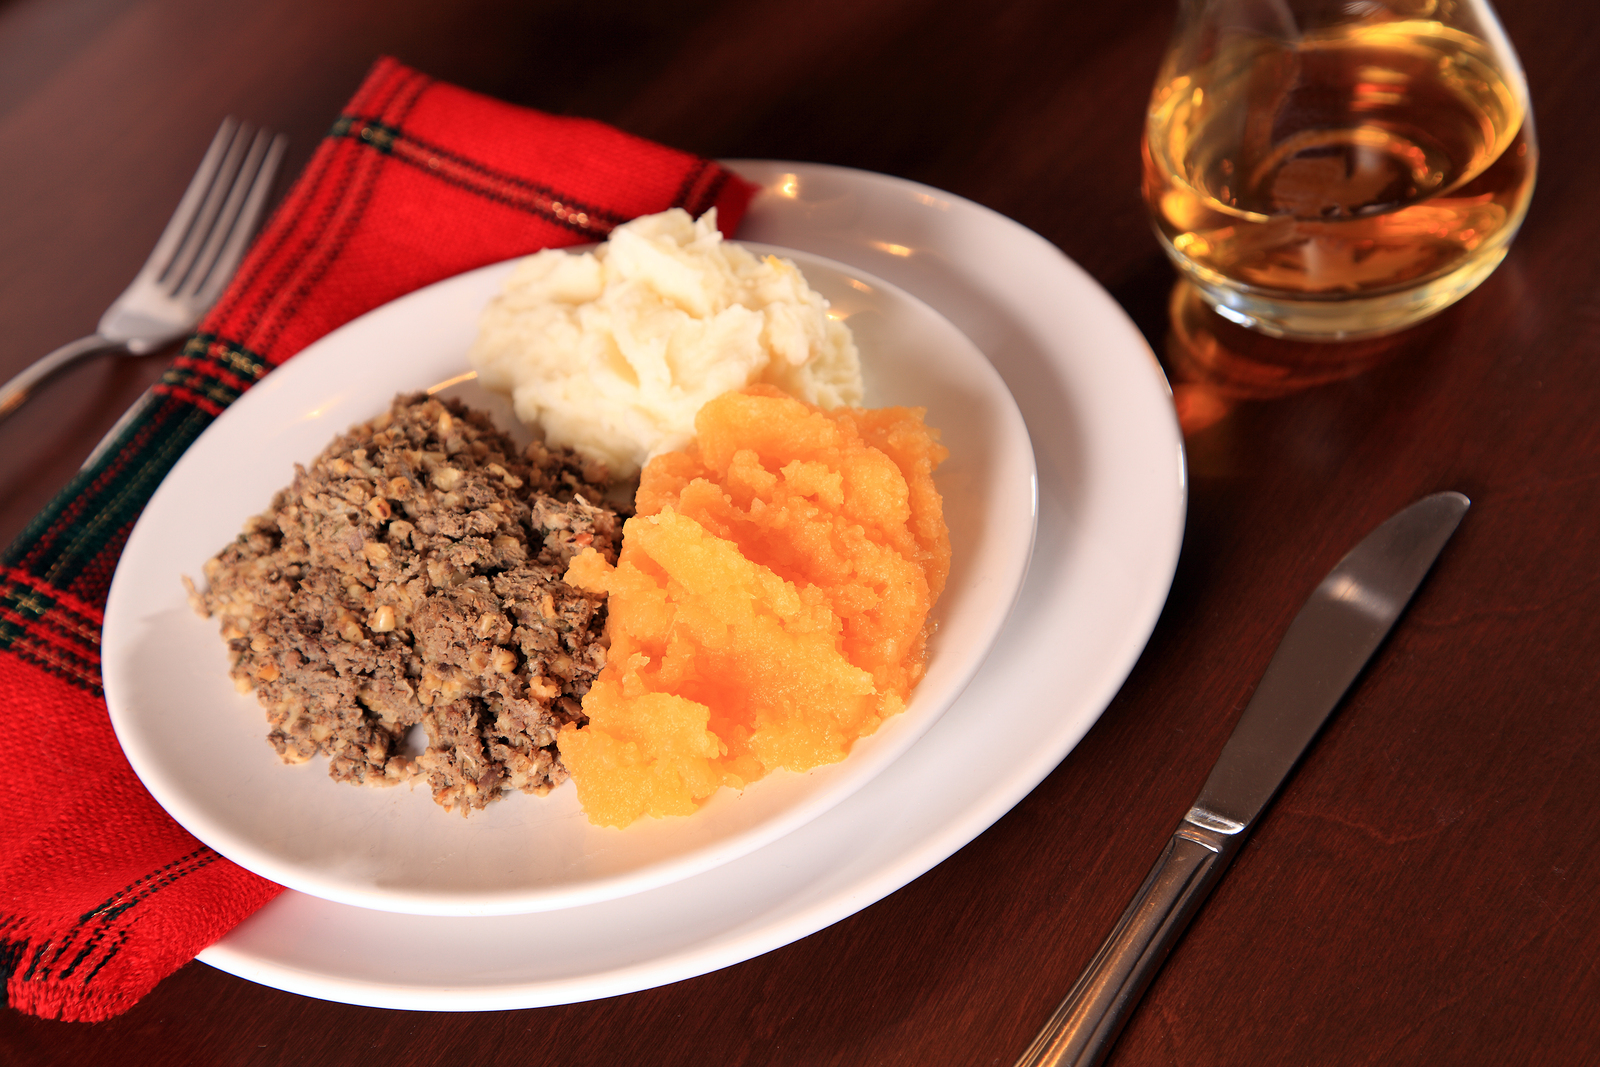 You have to try haggis on your Scottish tour, and we recommend having it with traditional neeps and tatties